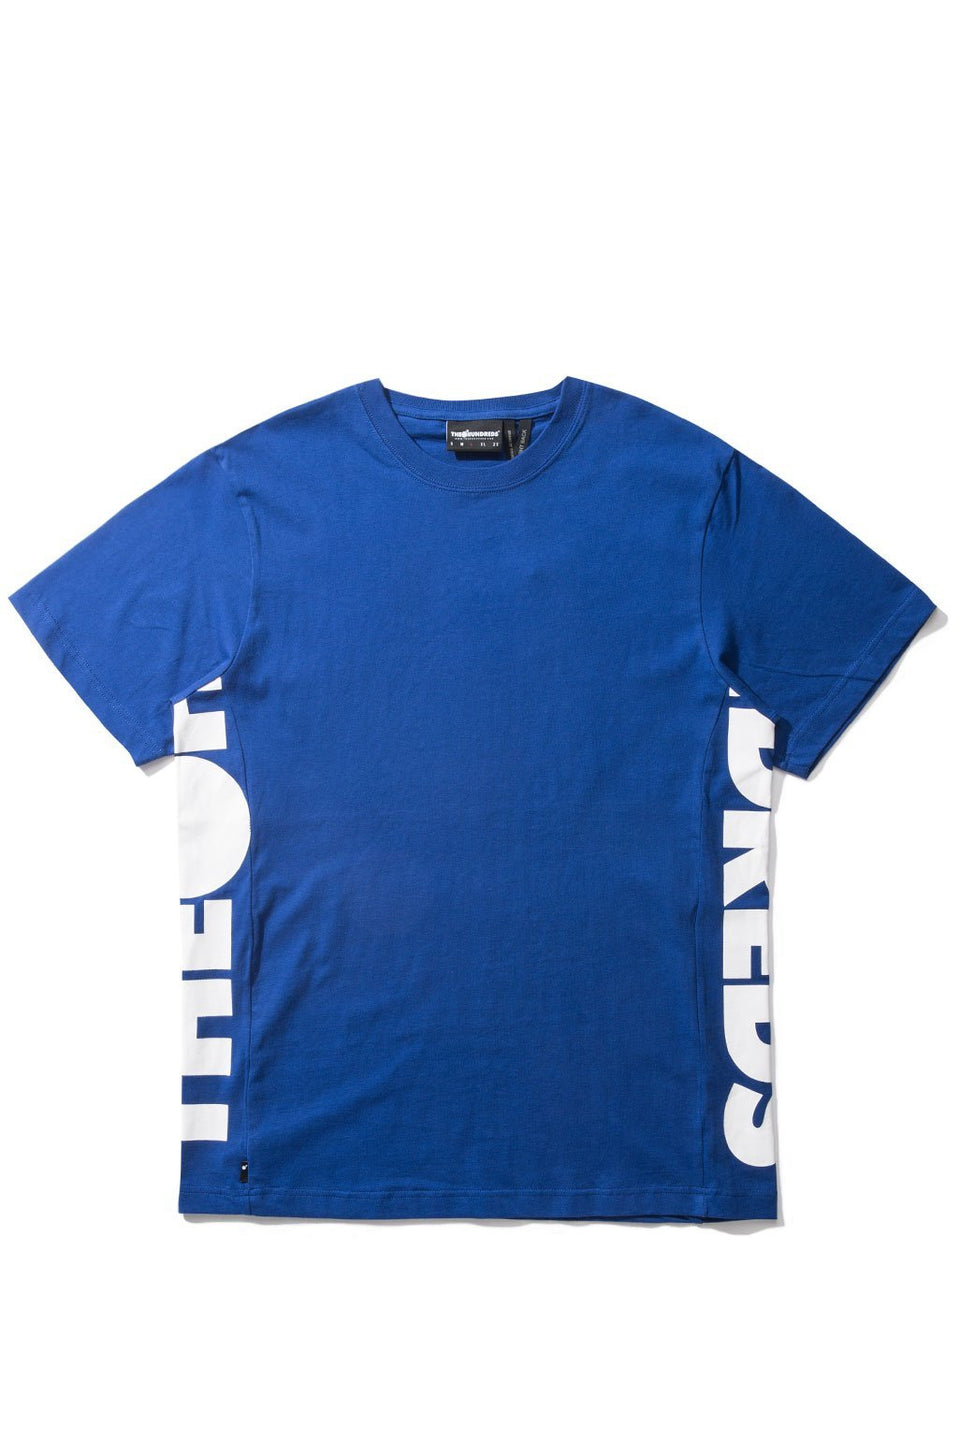 Sideways T-Shirt-TOPS-The Hundreds UK